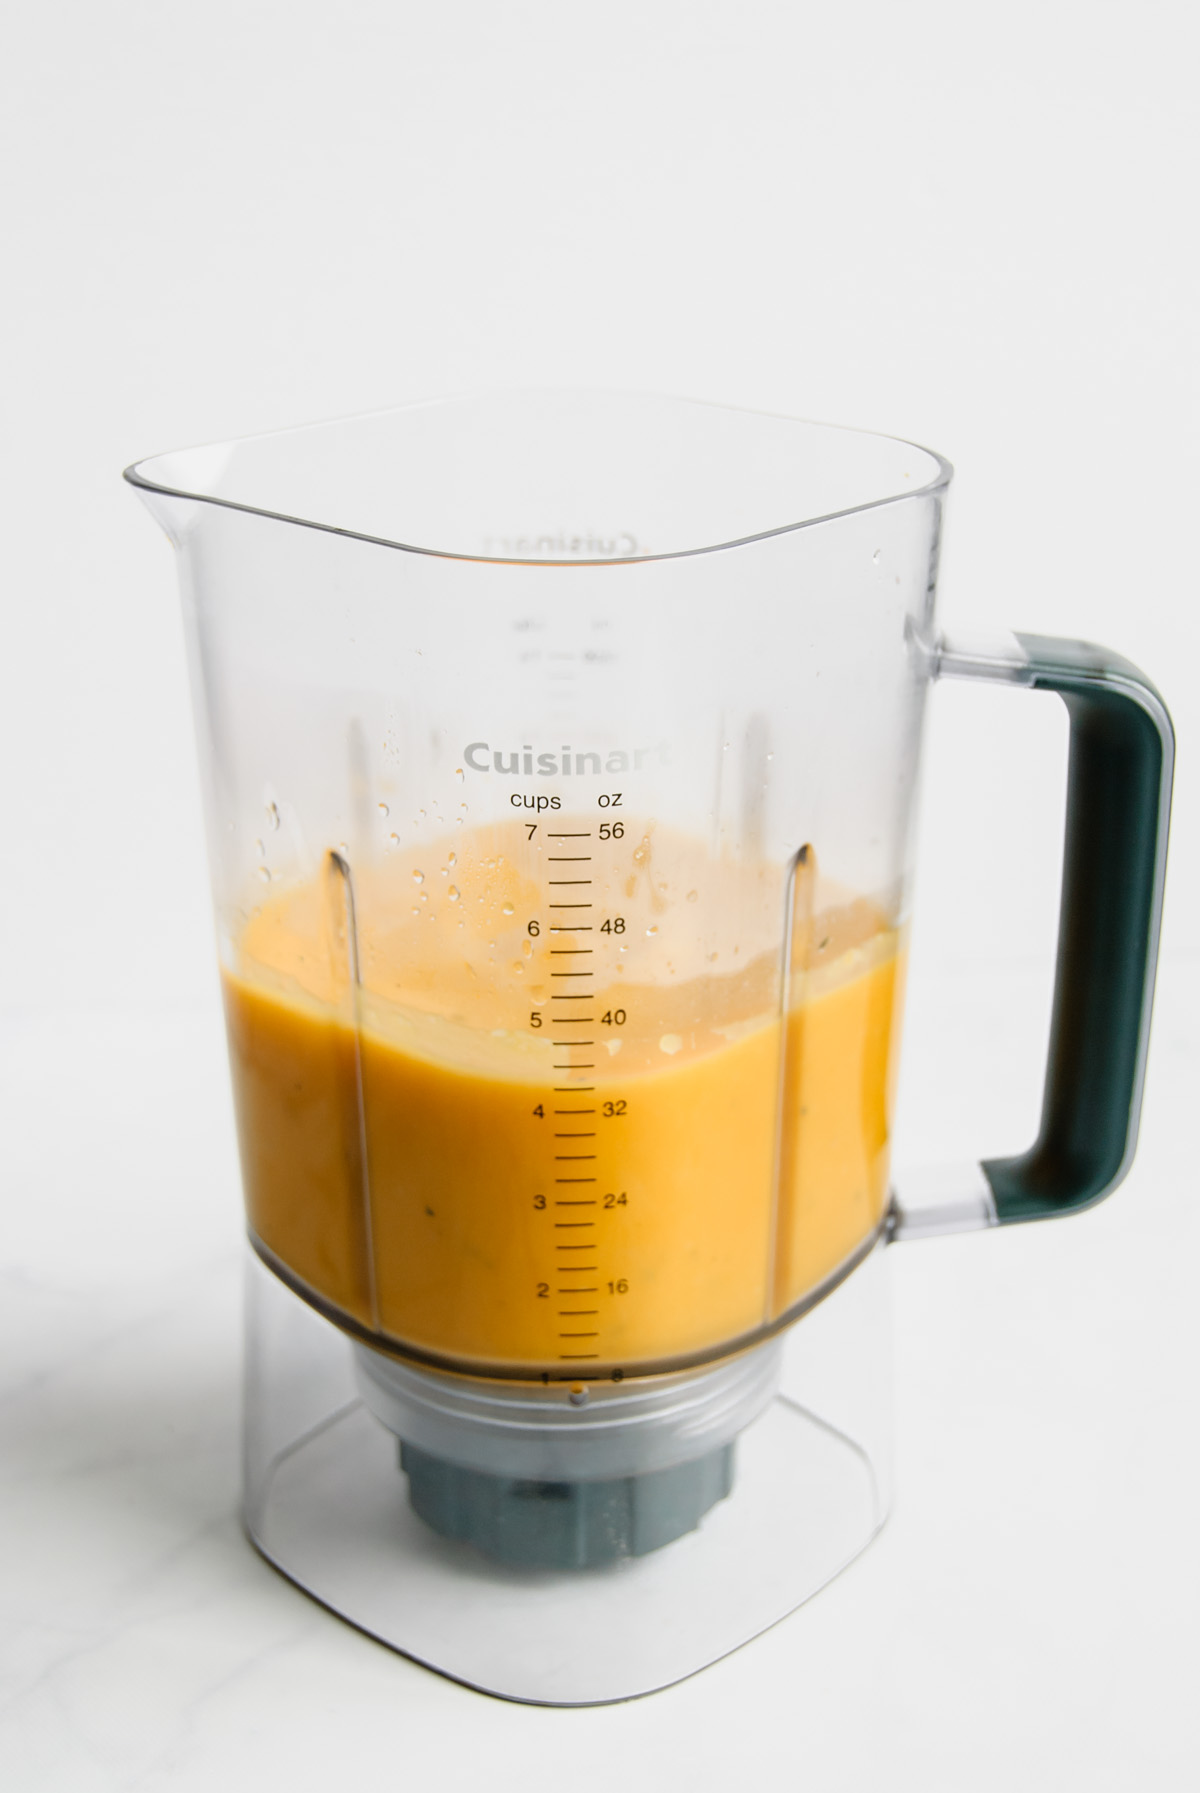 Blender full of pureed roasted butternut squash soup.